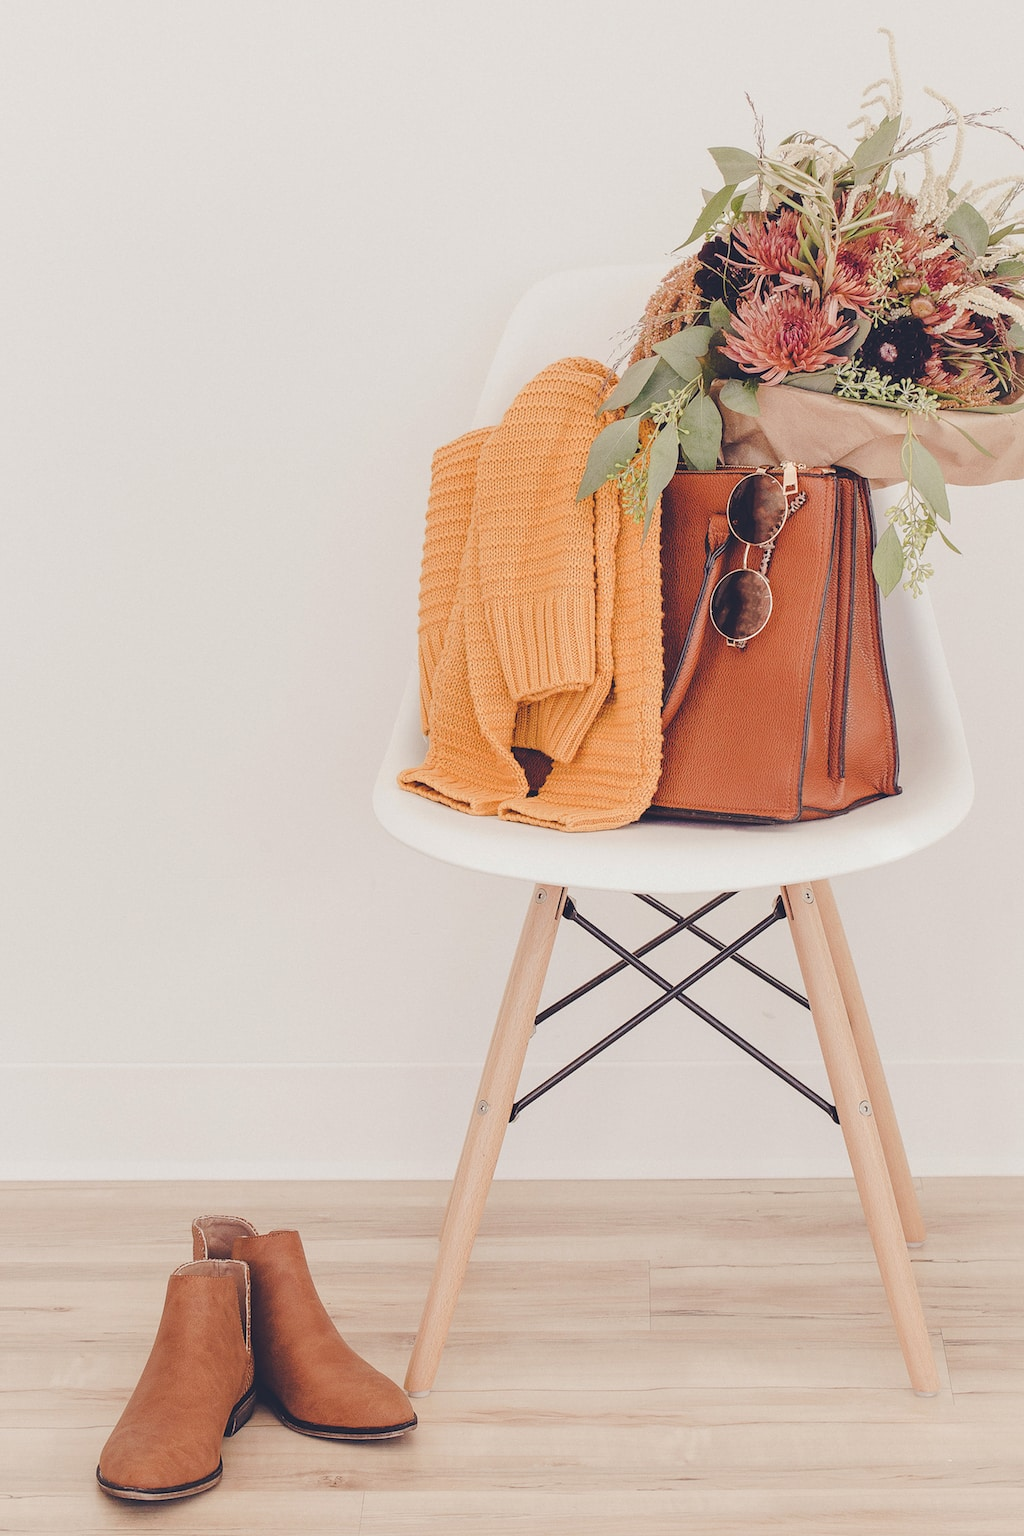 Purse on chair with flowers and cozy sweater.